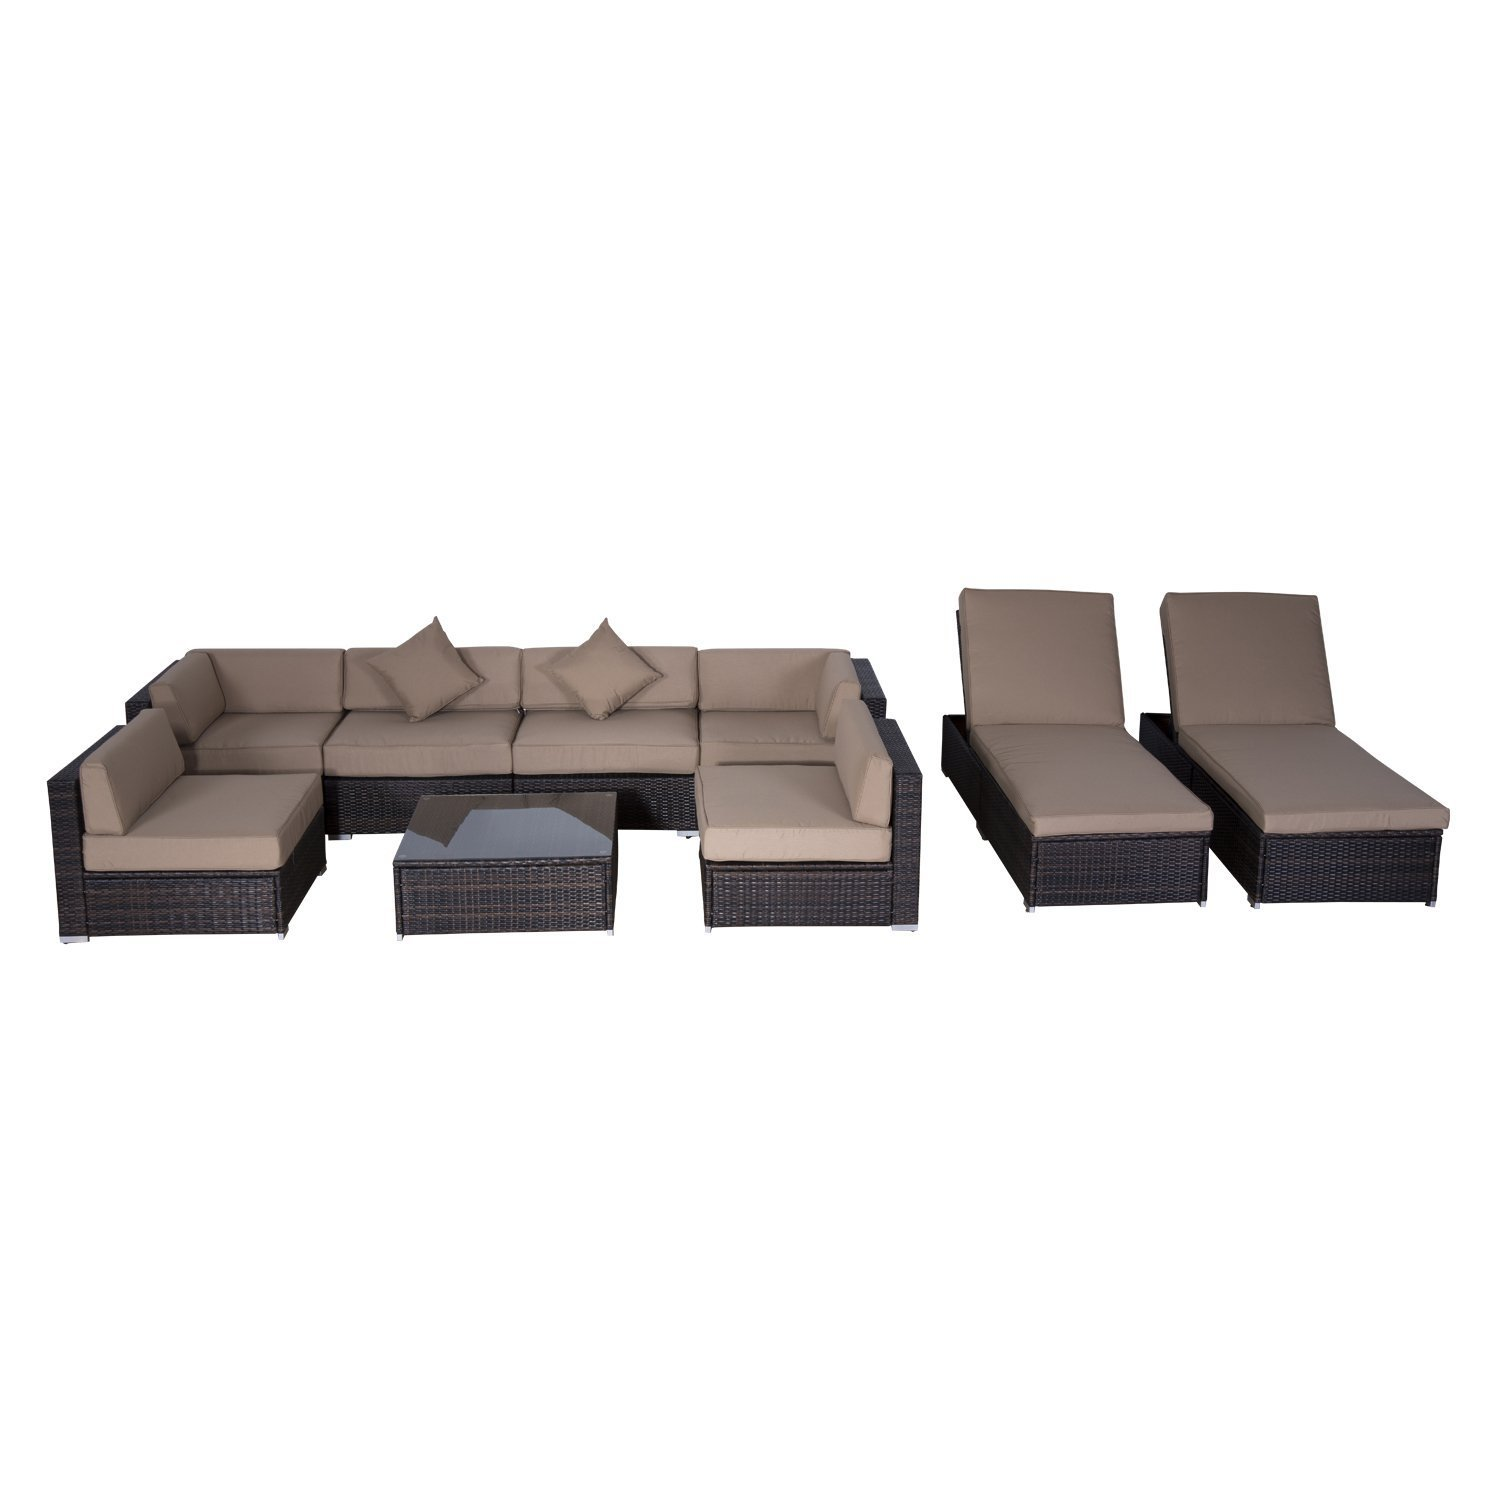 Wicker Patio Furniture Set Outdoor Sofa Sectional Chaise